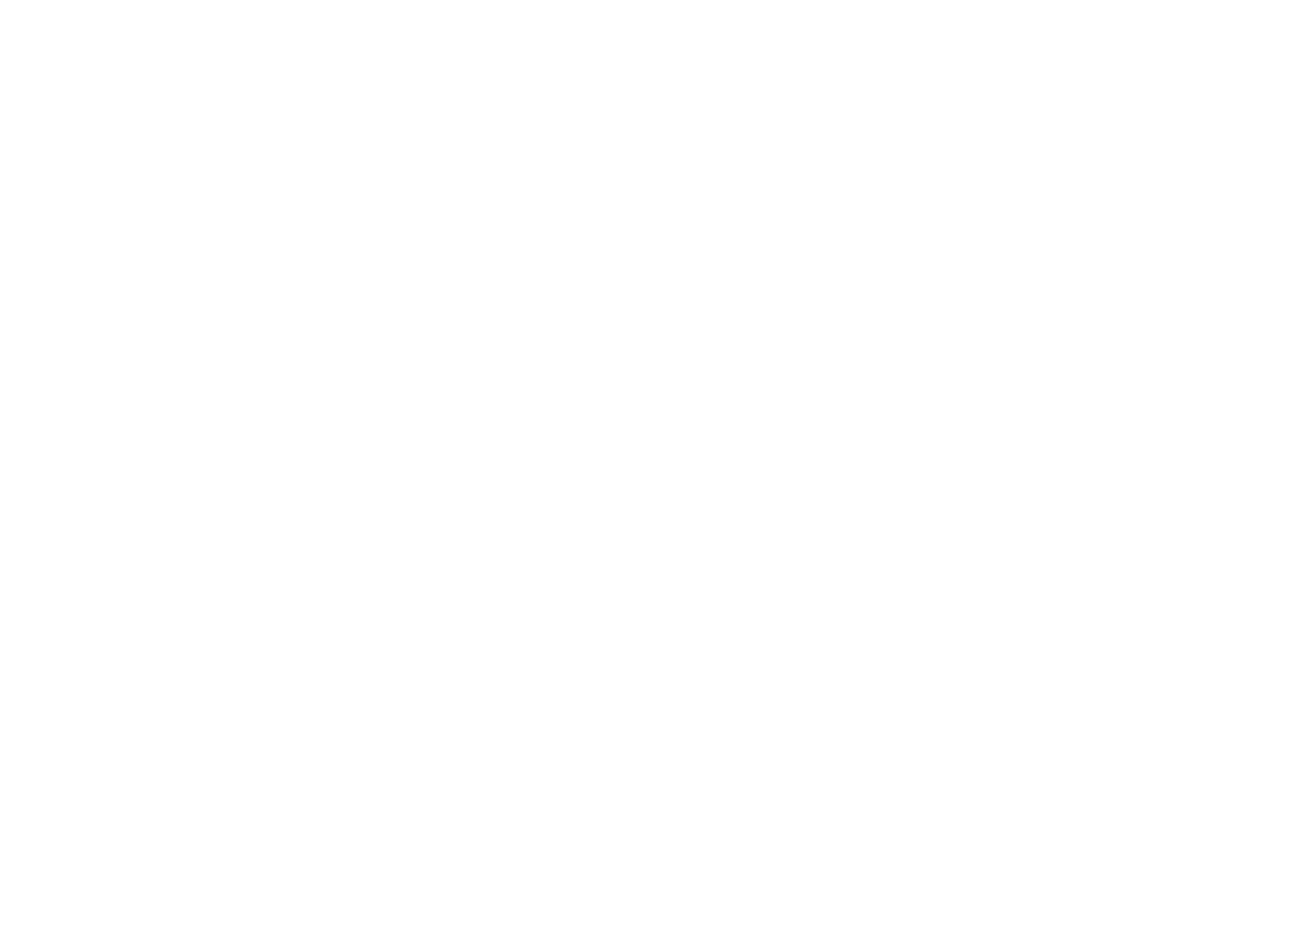 Advanced Tech Hub